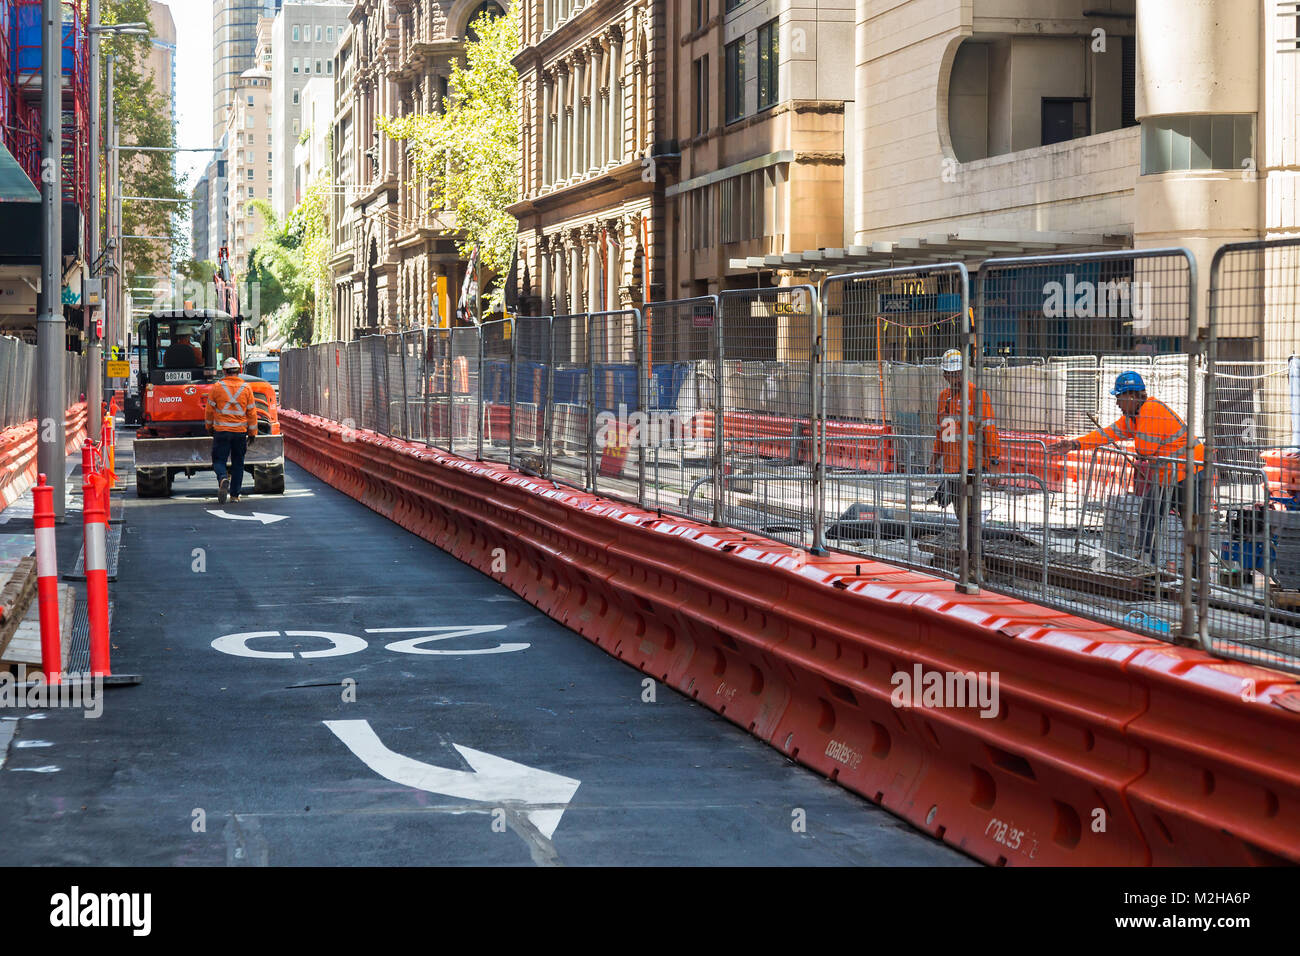 The new light railway system in progress, George Street, Sydney. - Stock Image